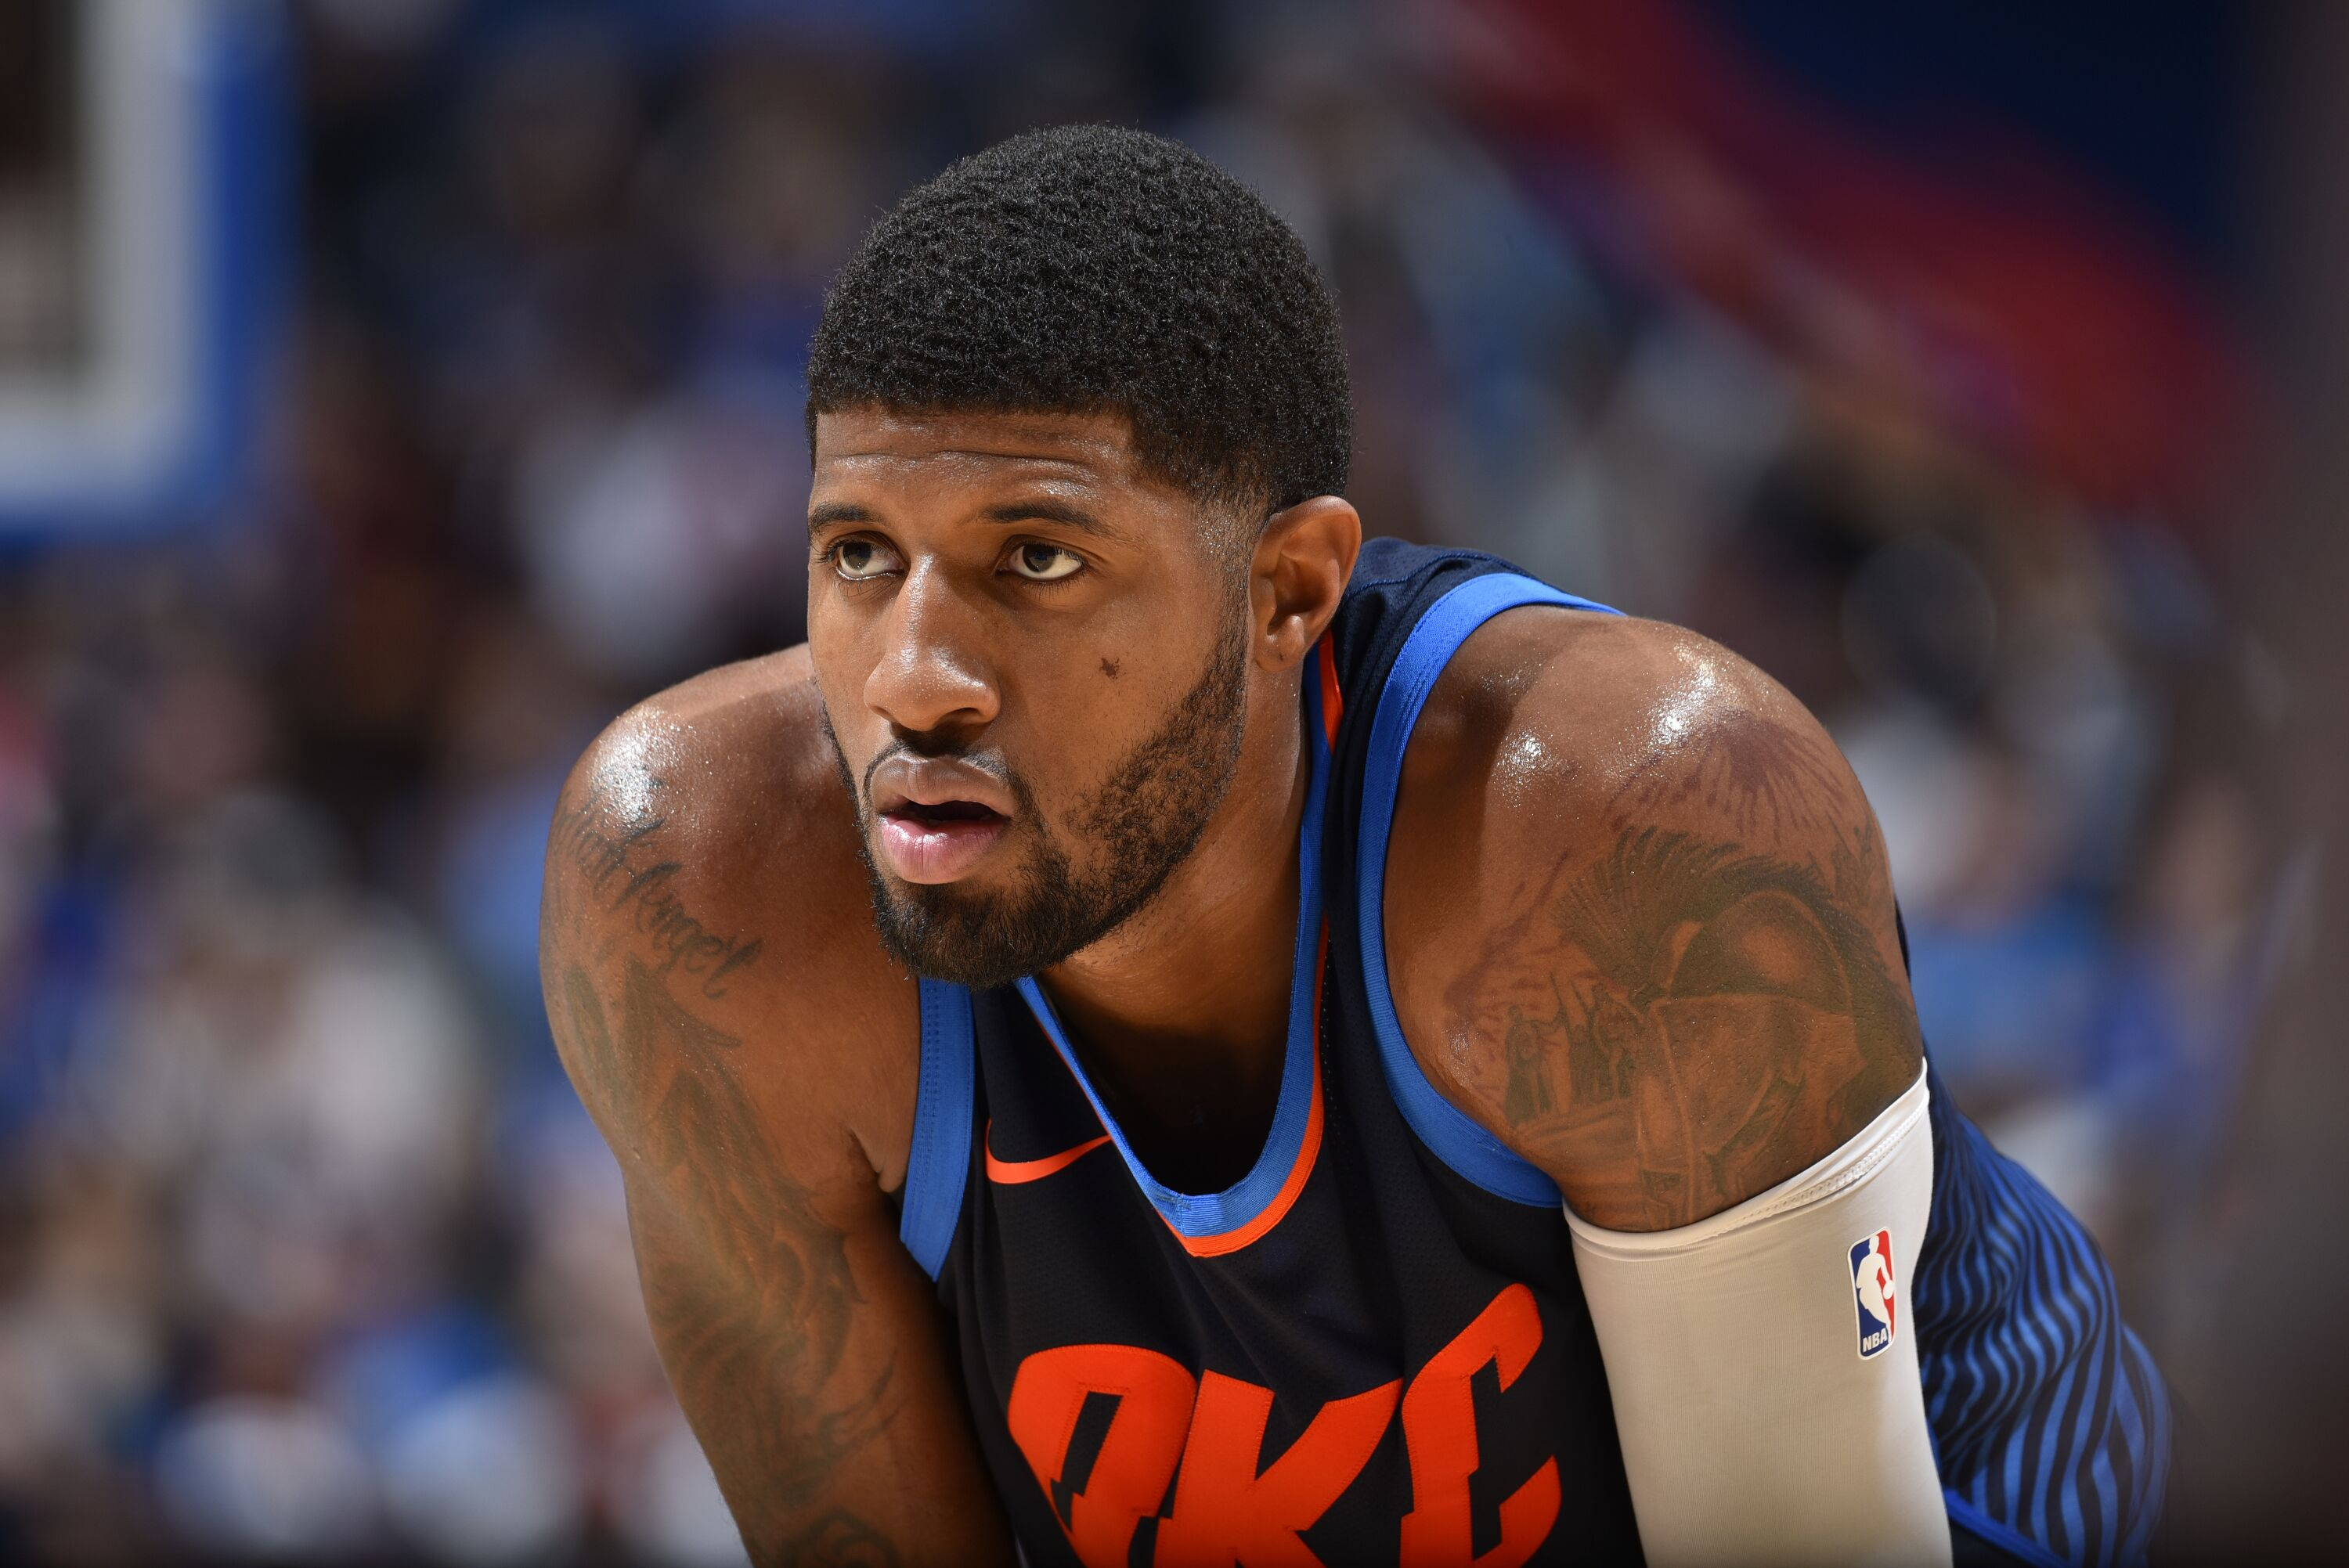 Paul George: Indiana Pacers: Checking In On Paul George With The OKC